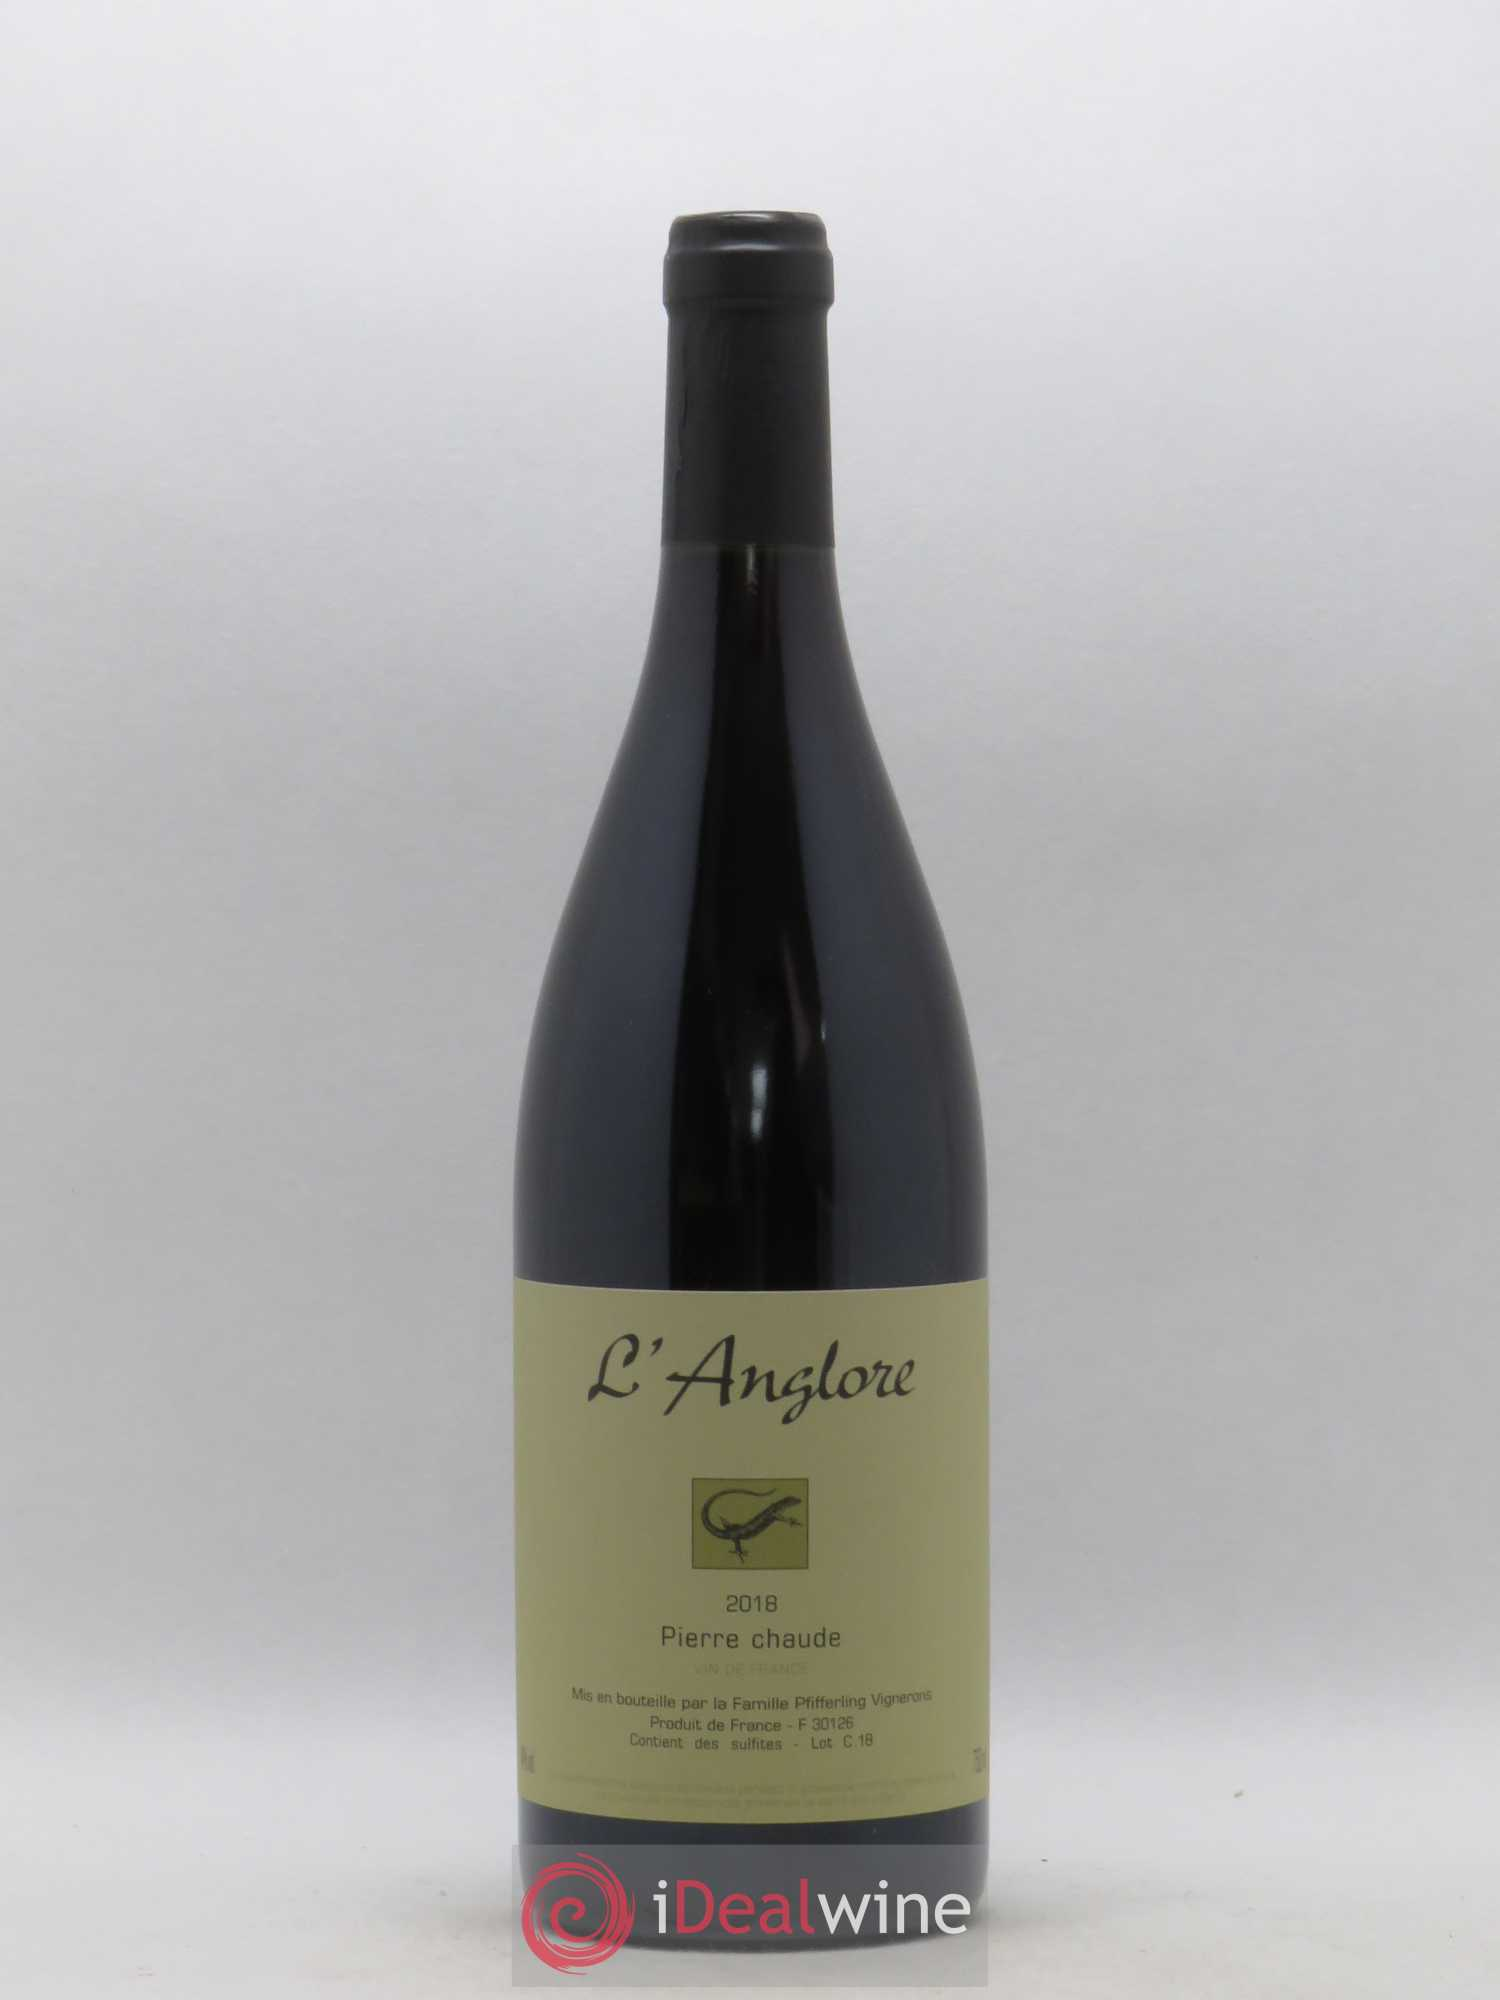 Vin de France Pierre chaude L'Anglore  2018 - Lot of 1 Bottle